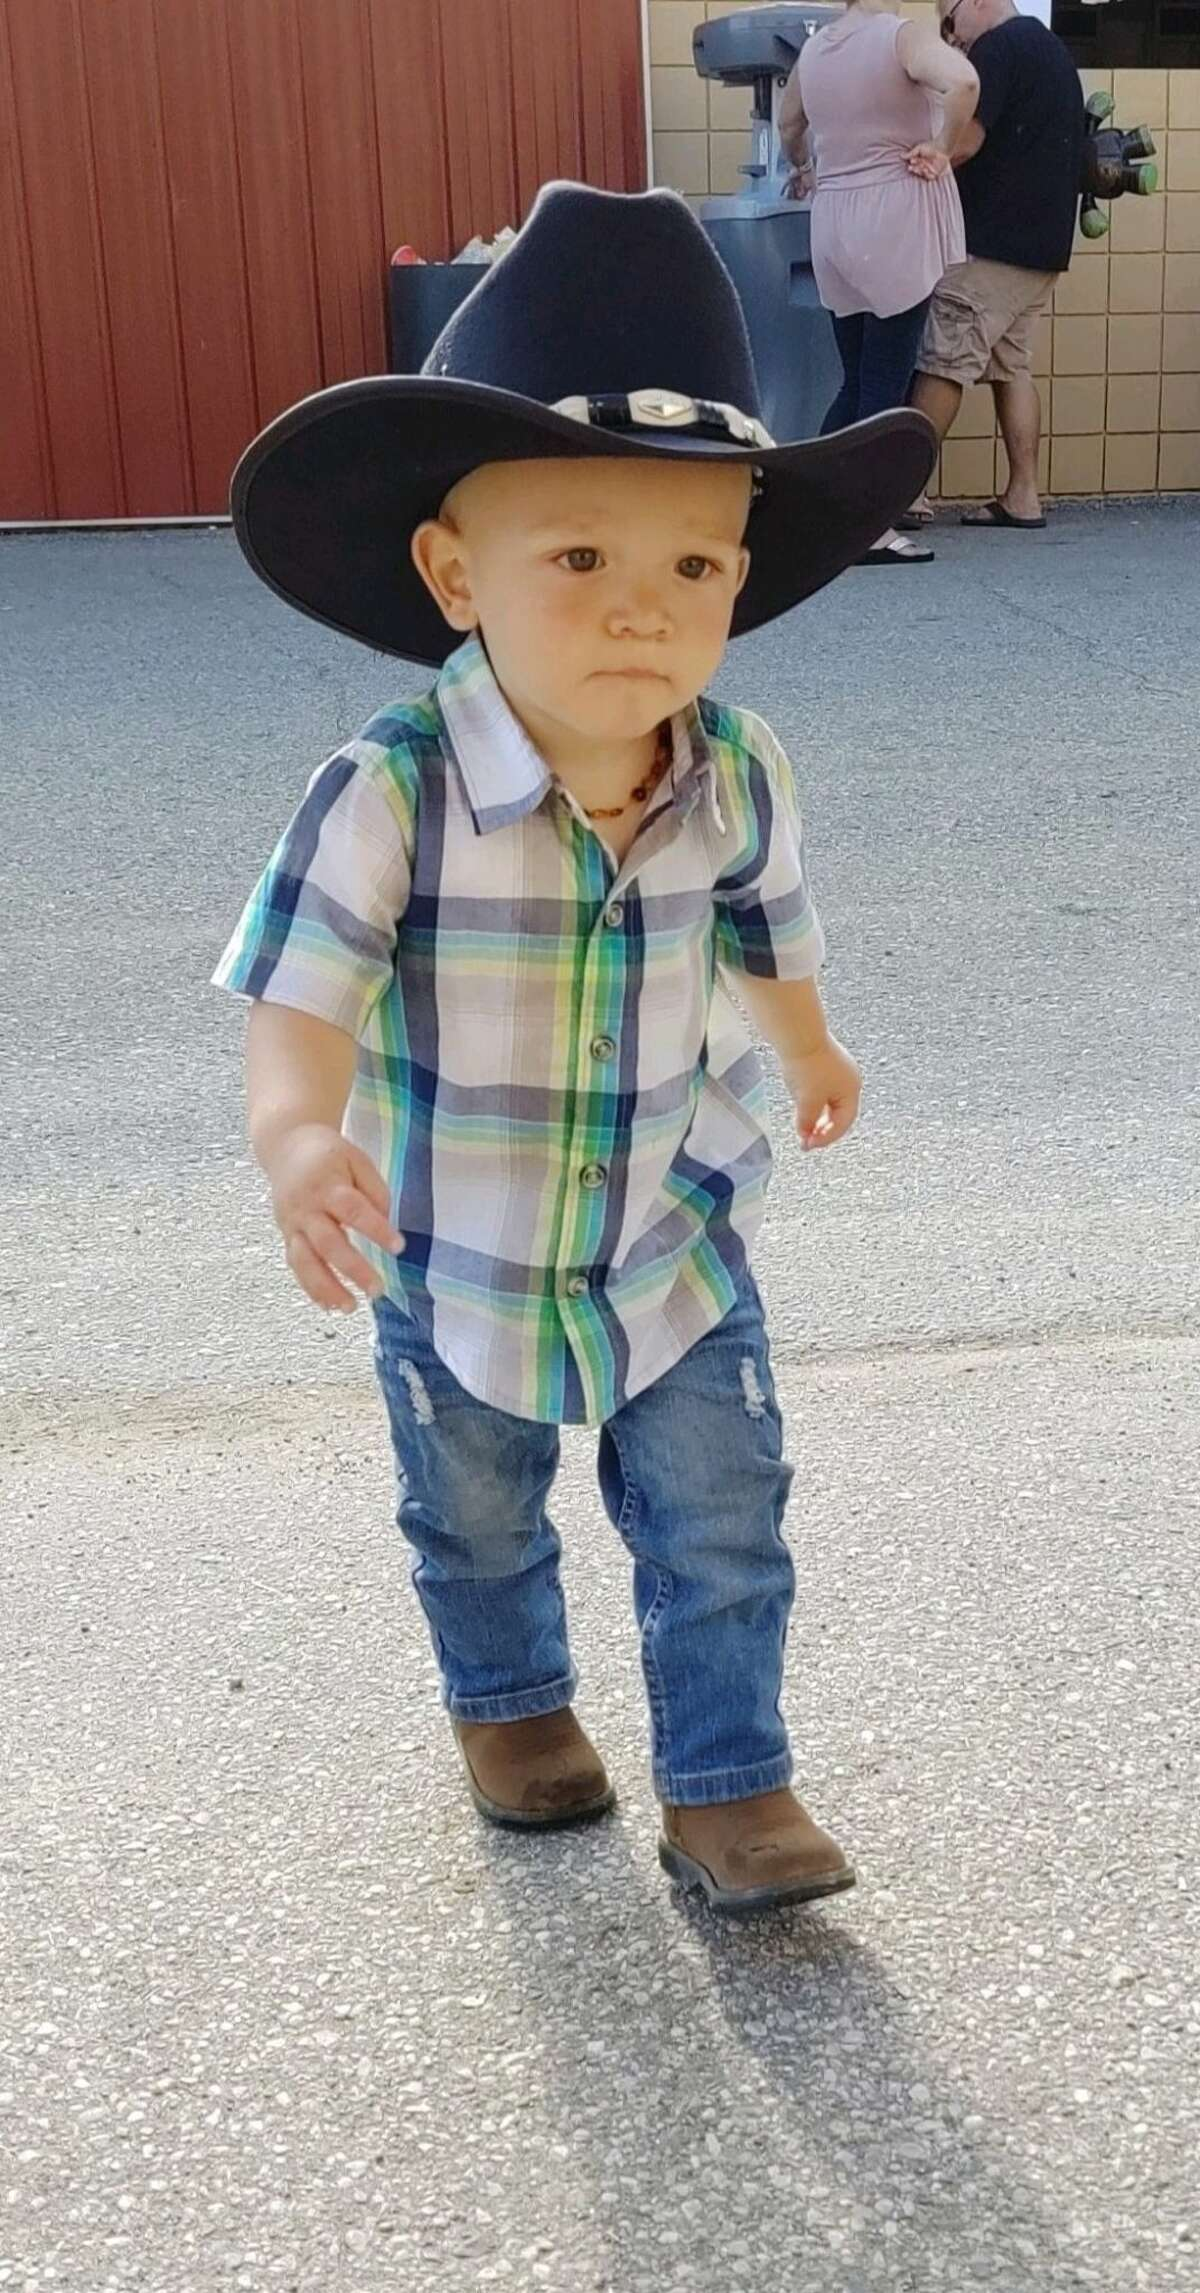 Axle Goodman, 18 months, walks around with his parents, Brittaney and Aaron Goodman (not pictured) at the Midland County Fair on Tuesday, Aug. 13, 2019. (Photo provided/Brittaney Goodman)